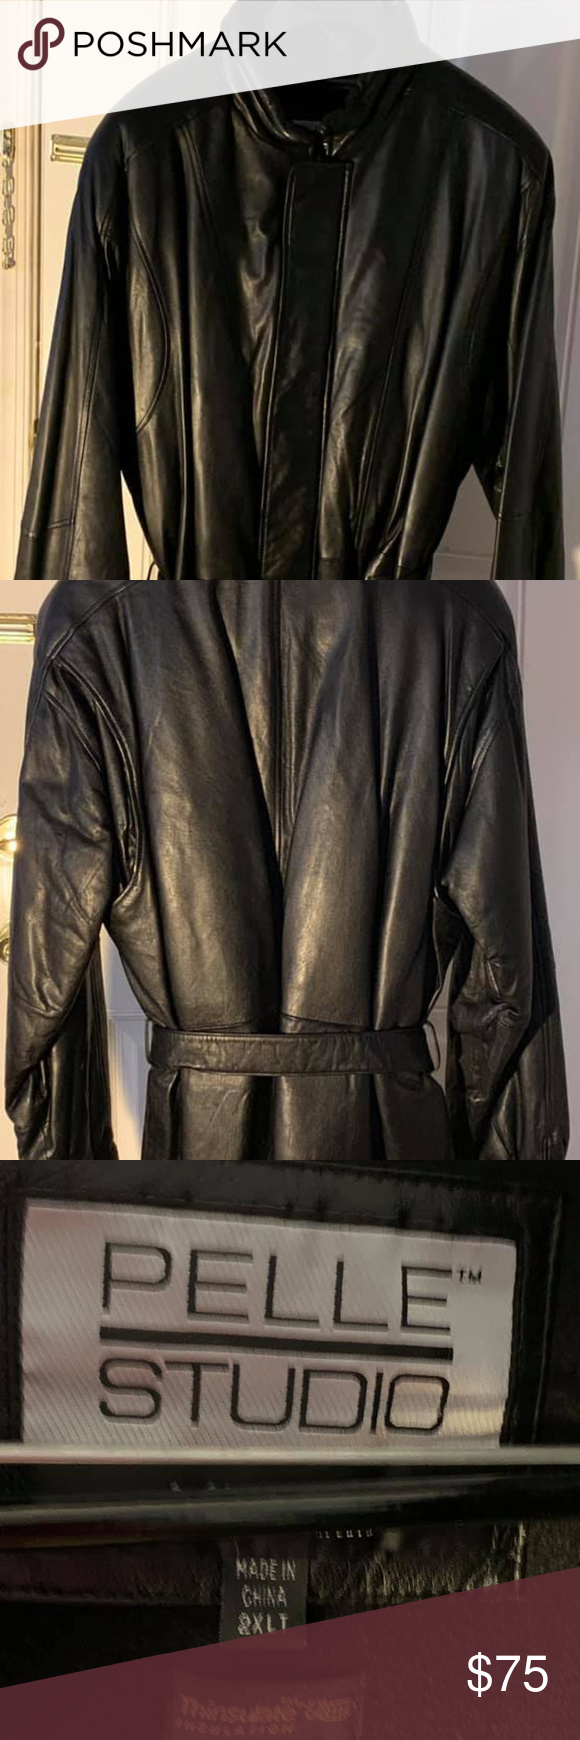 "Wilson's Leather ""Pelle Studio"" Jacket, Sz 2XLT Wilsons"